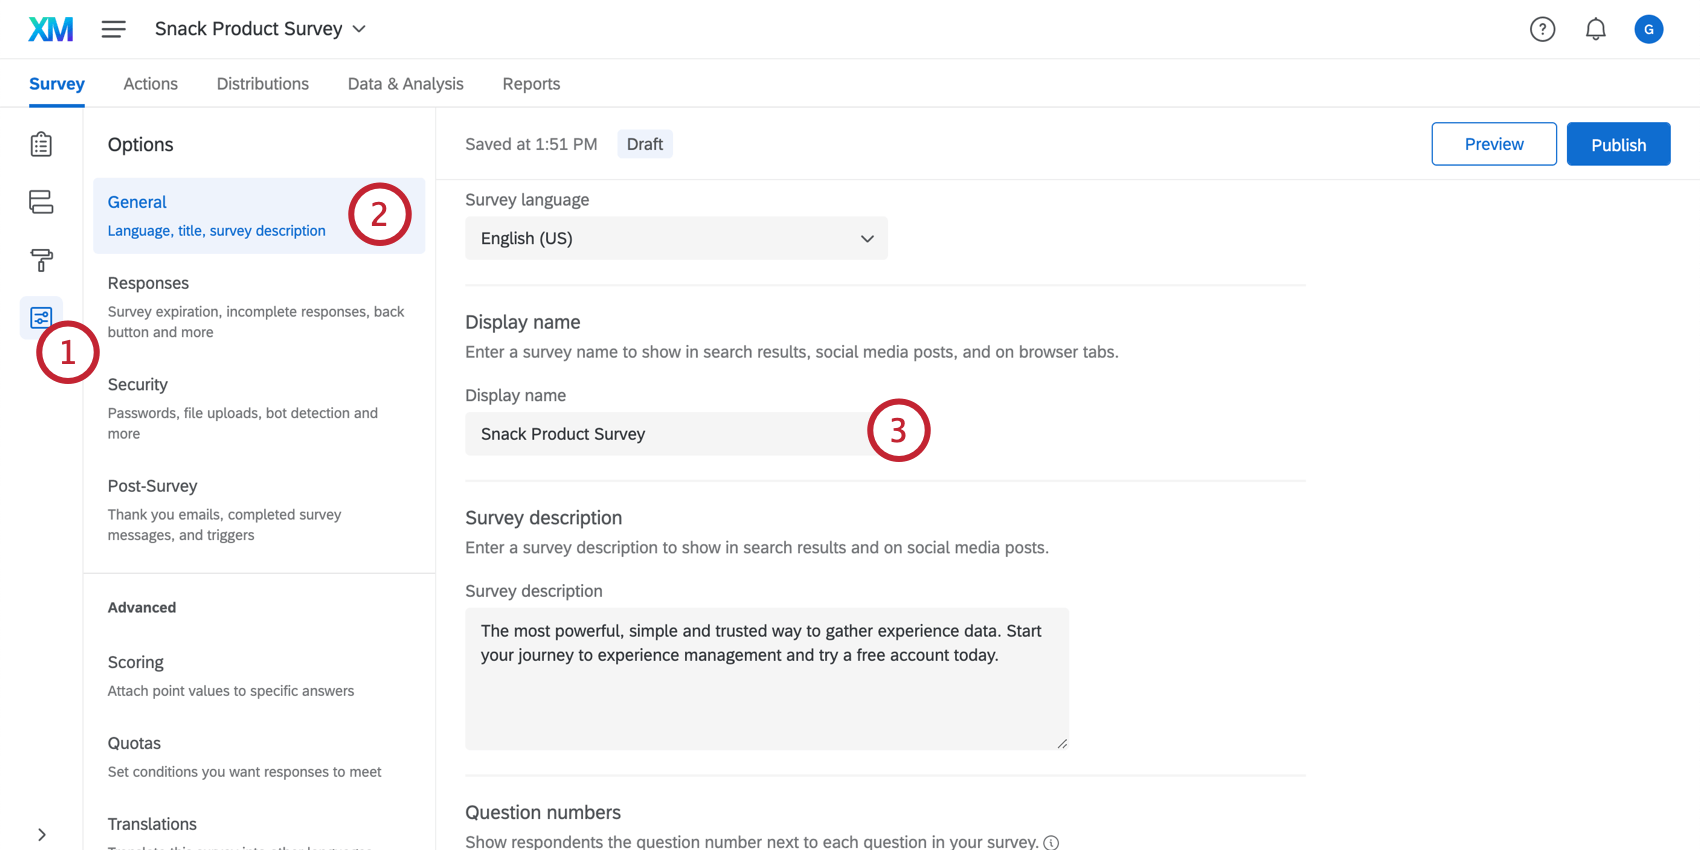 Changing the display name in the survey options